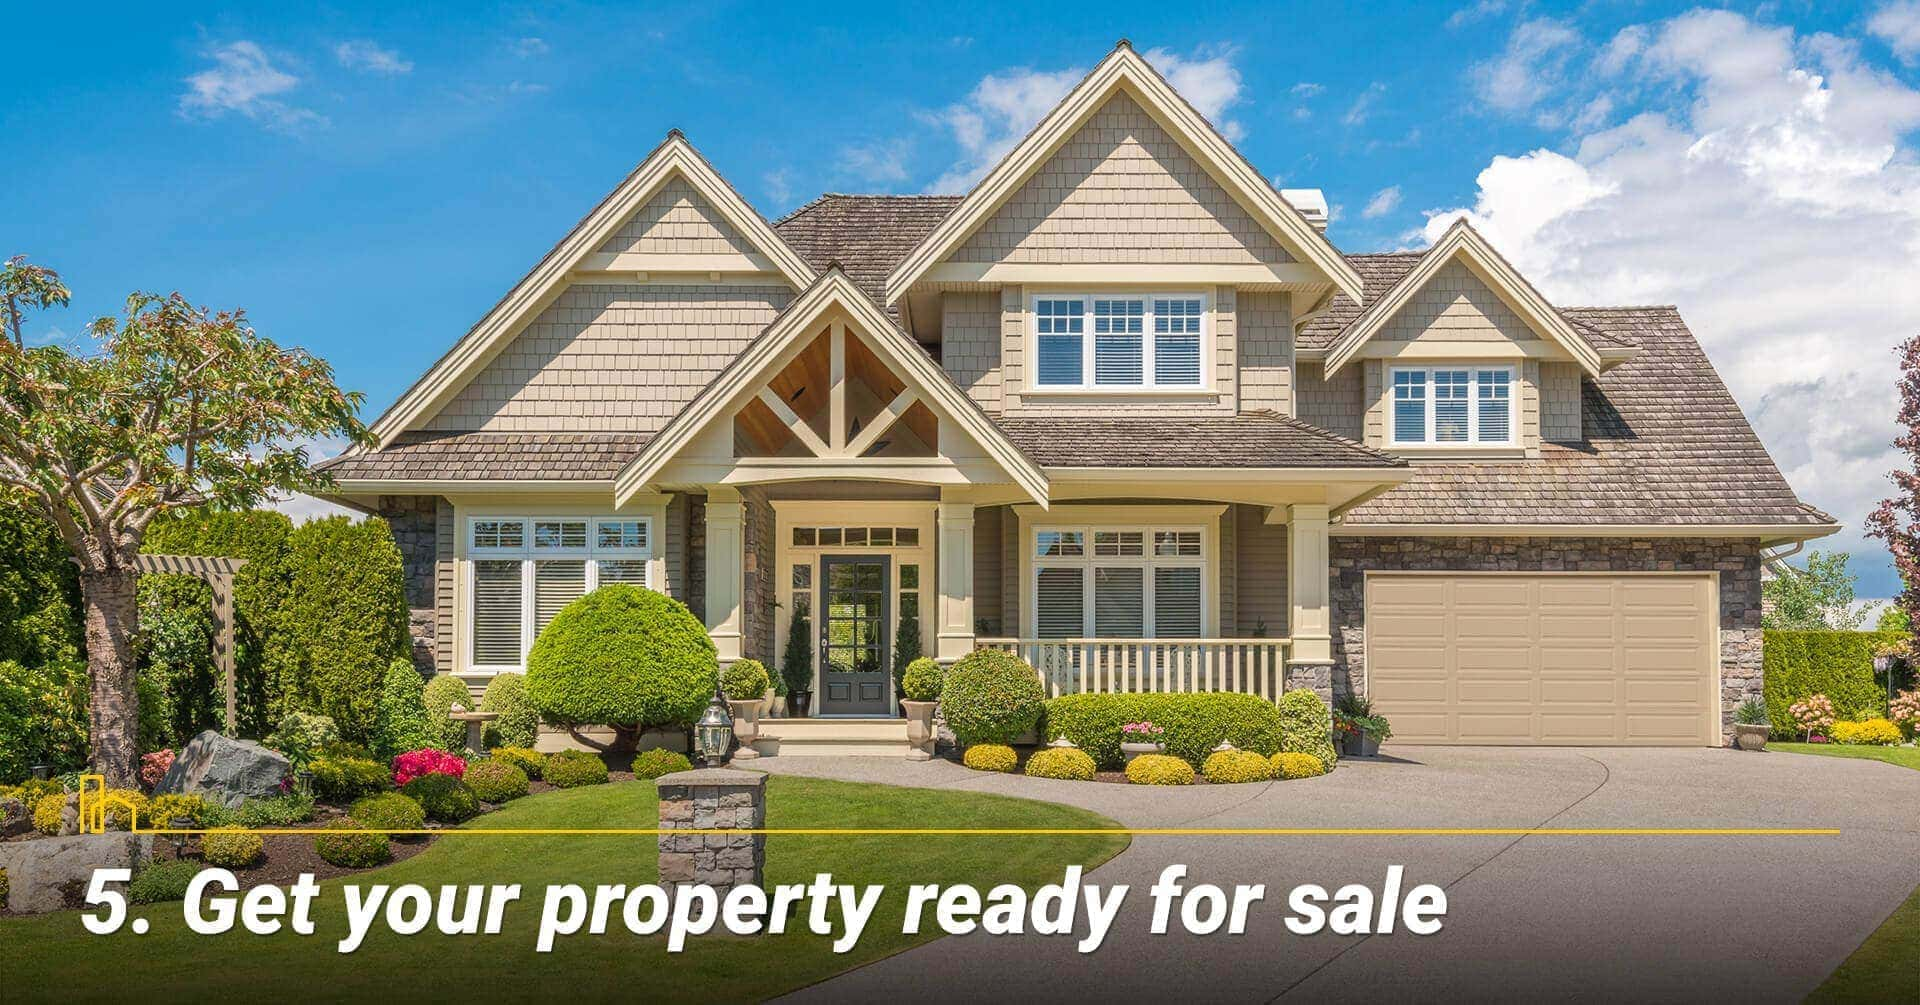 Get your property ready for sale